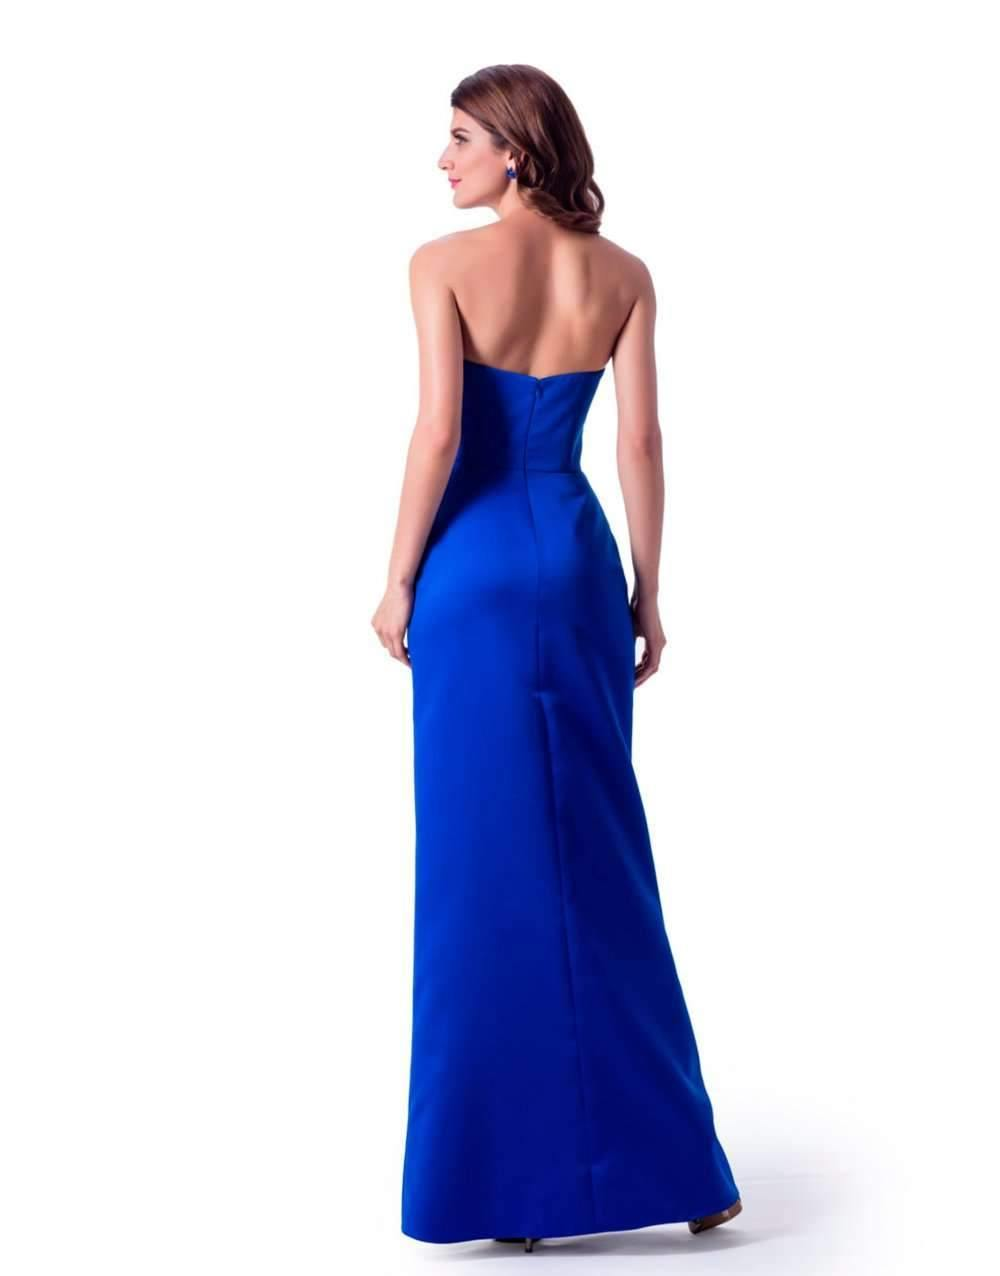 UK18 COBALT - AVA - SALE - Adore Bridal and Occasion Wear